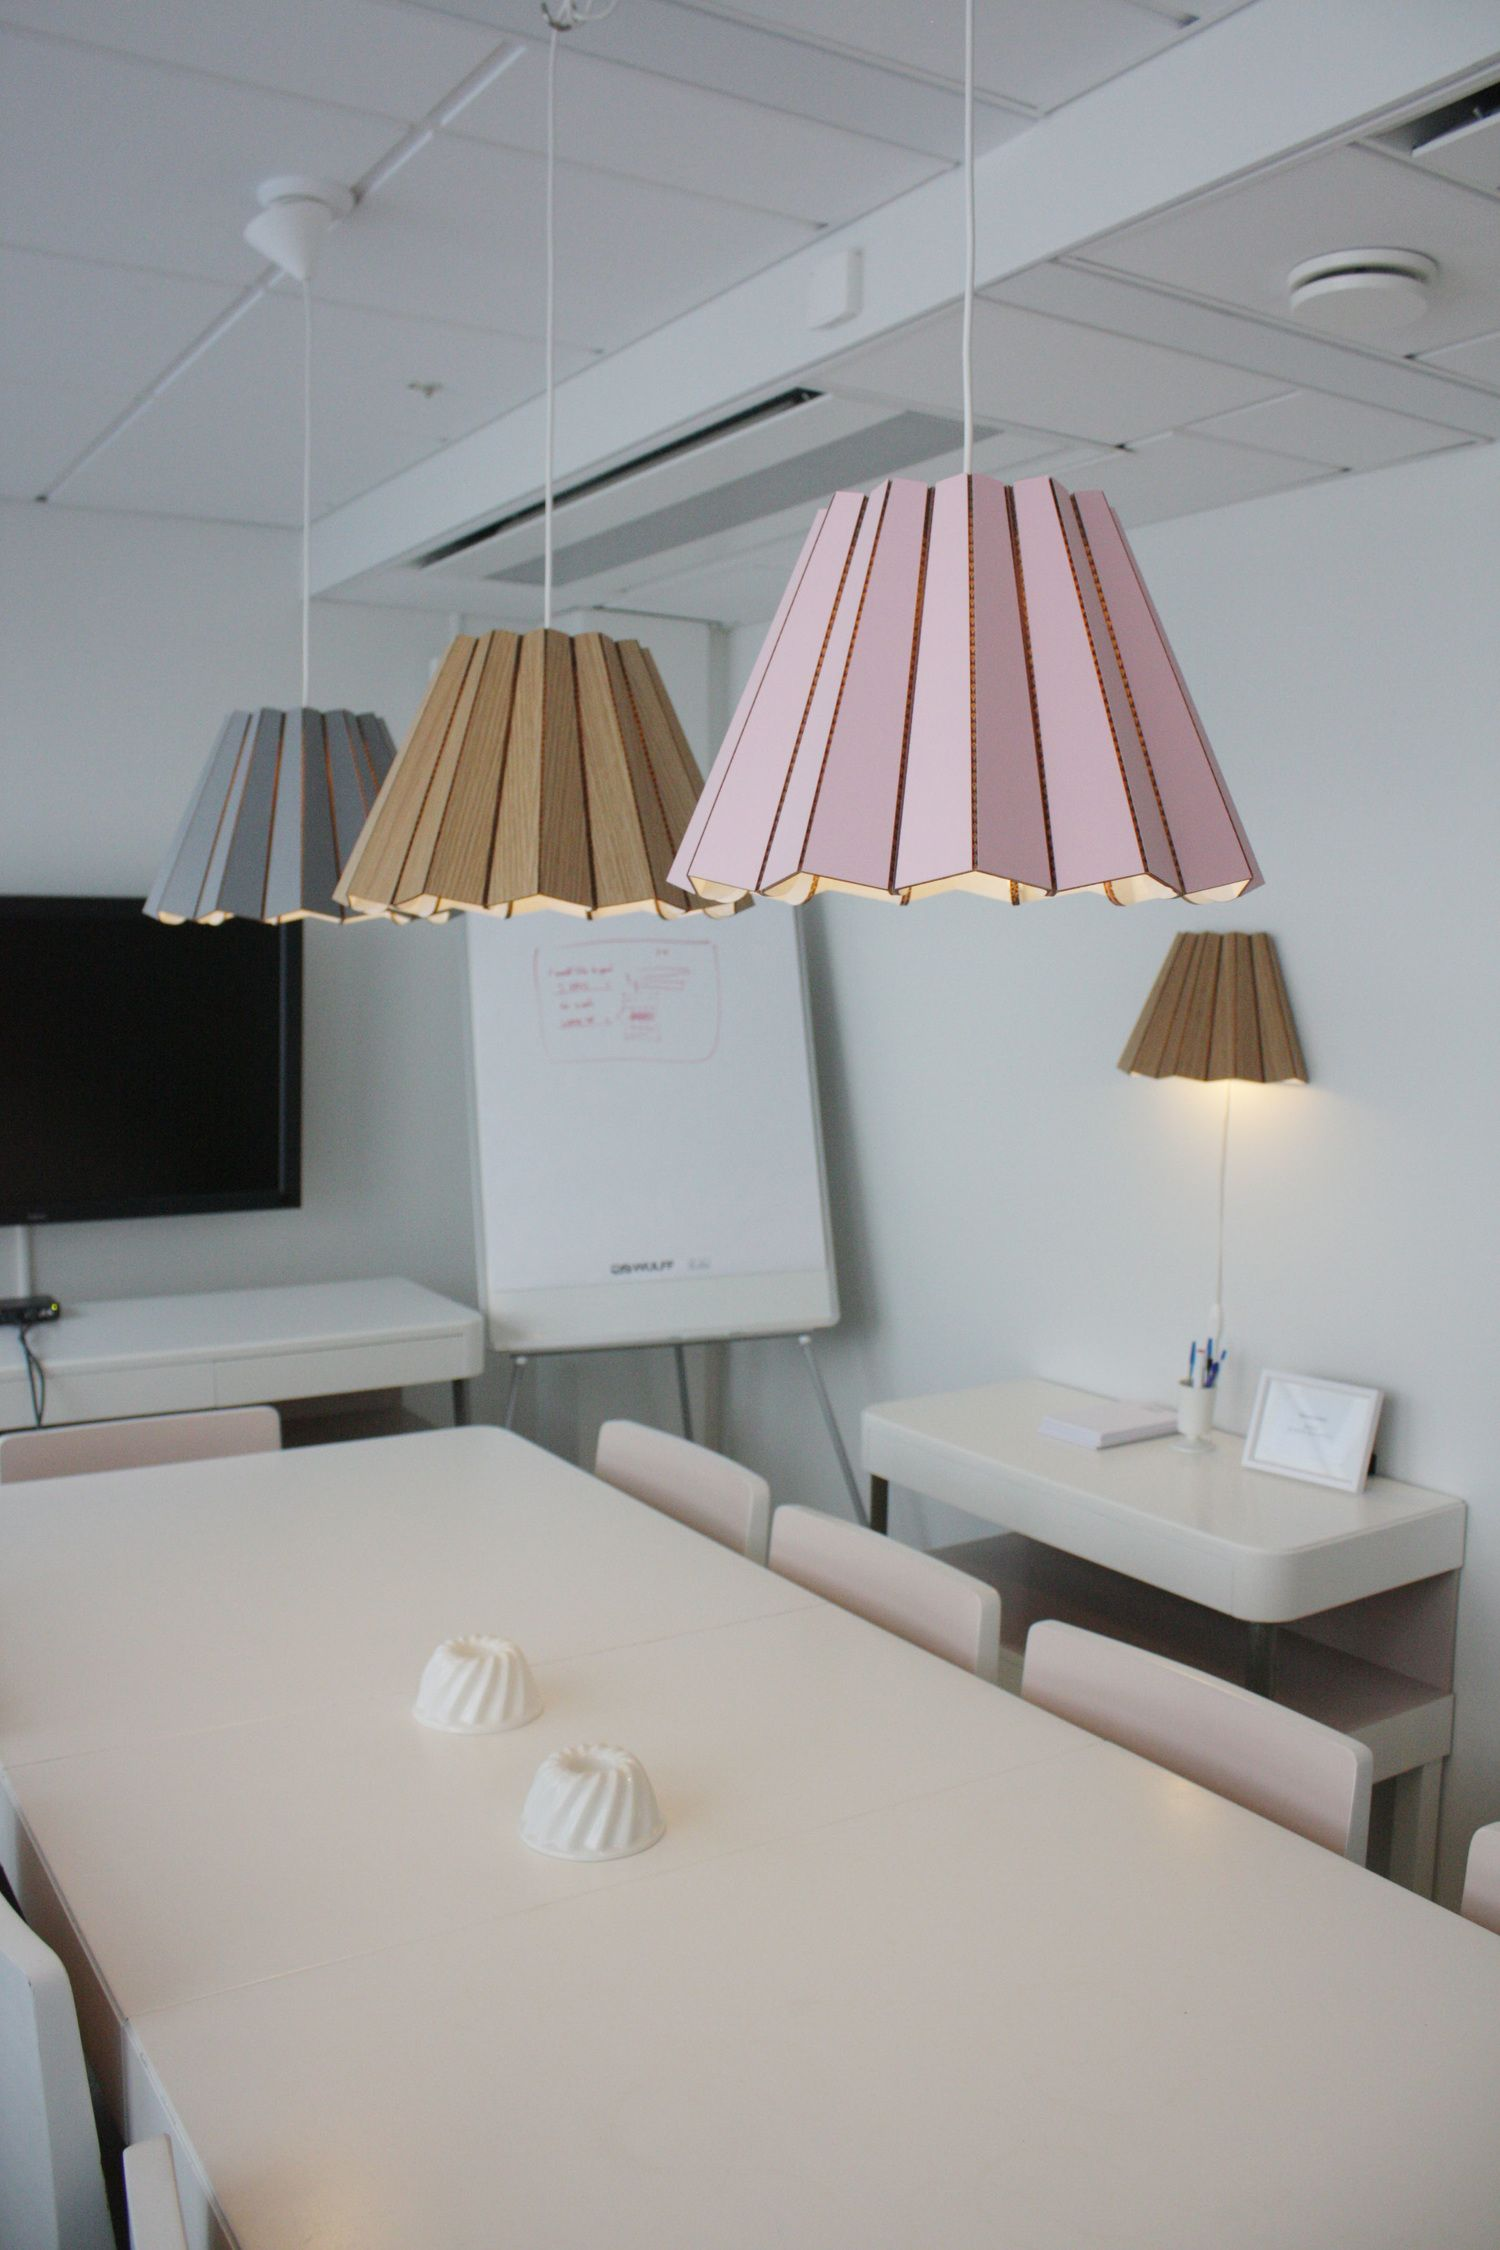 eco friendly lighting. Corrugated Cardboard Pendant Light From Finnish Lighting Company Andbros. The Eco-friendly Lights Can Be Shipped In A Flat Pack. Made Finland. Eco Friendly R